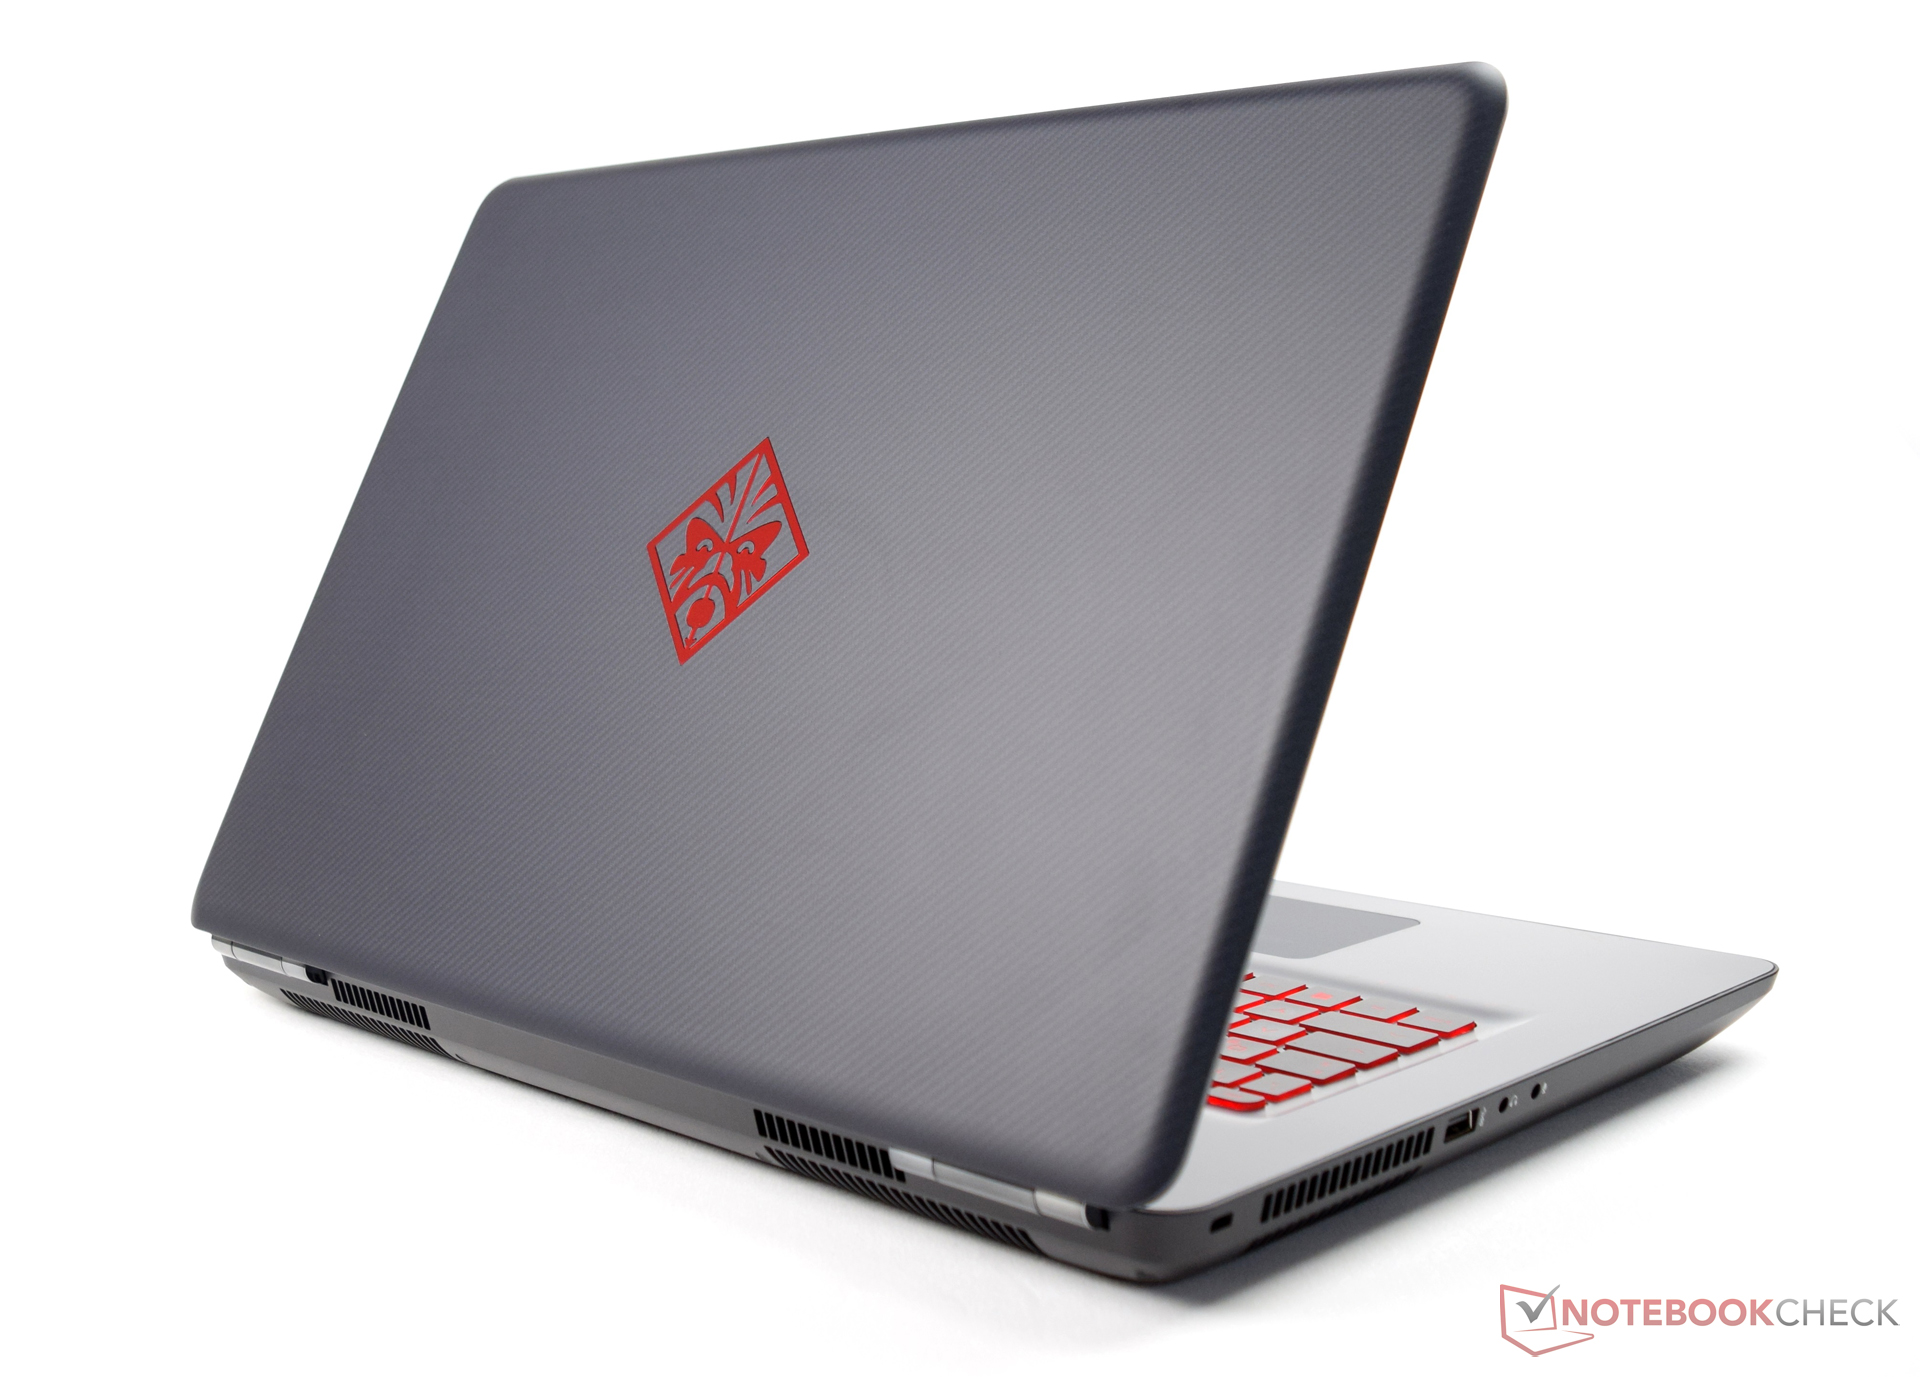 fa8ce9f740c3 Test HP Omen 17 (Pascal) Laptop - Notebookcheck.com Tests